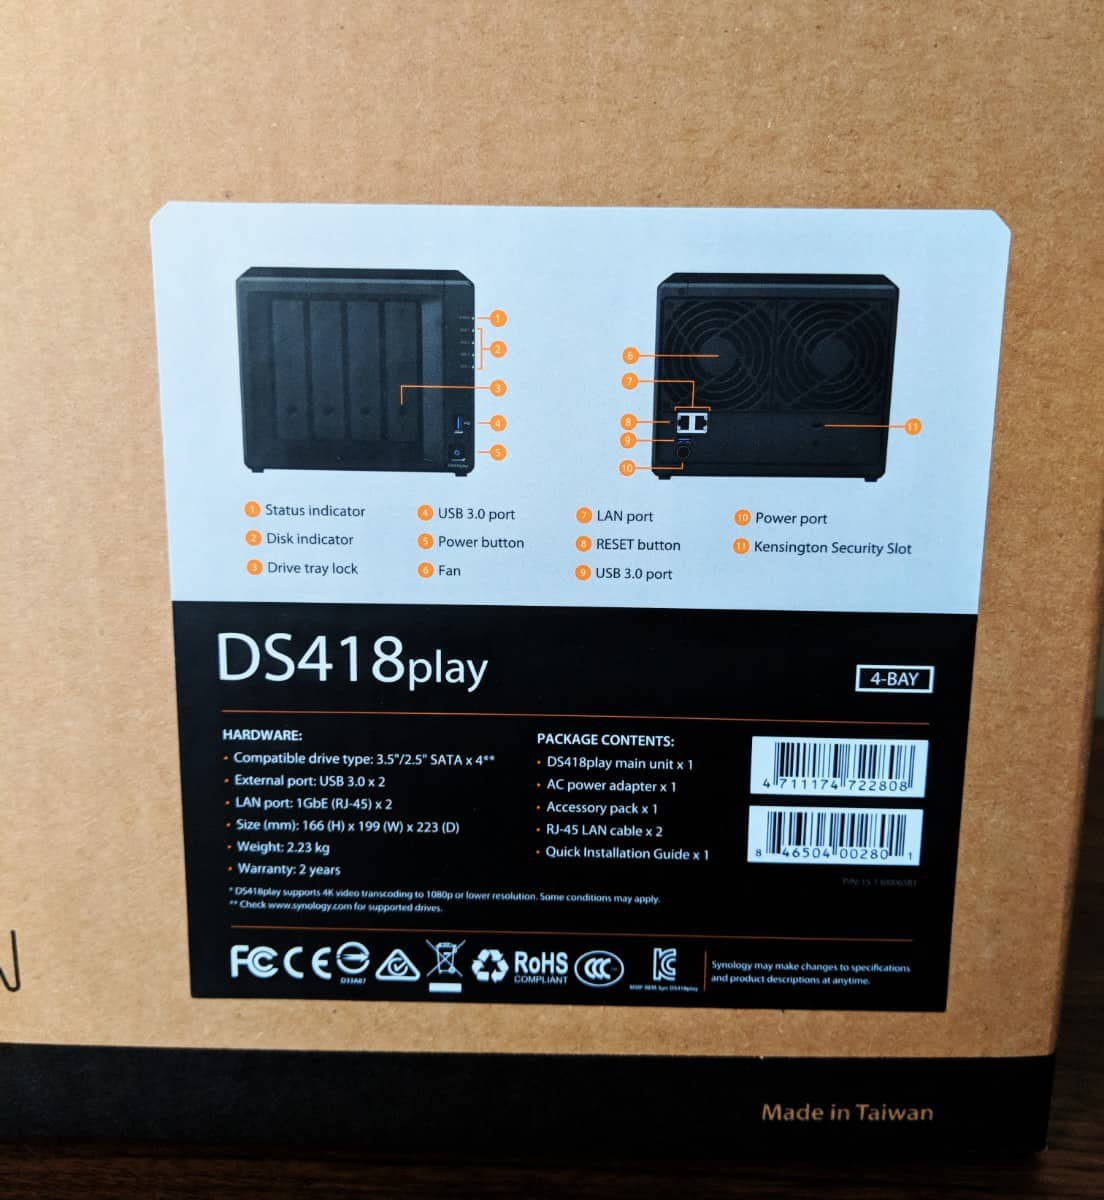 Synology-DS418play-Photos-20 Synology DS418play Review